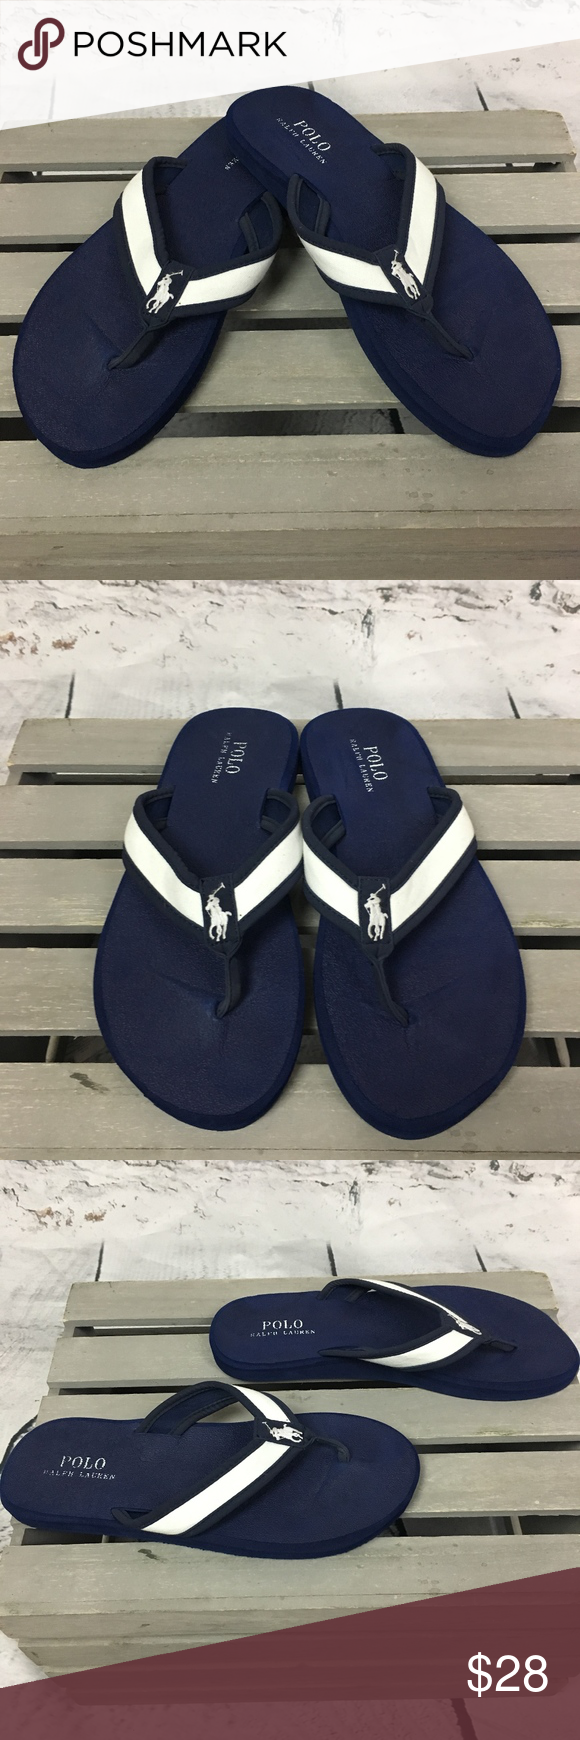 3393983f96cab Polo Ralph Lauren Almer II Mens Flip Flop Sandals Polo Ralph Lauren Almer  II Mens Flip Flop Sandals Preloved in excellent condition Size 10 Bundle  and save ...